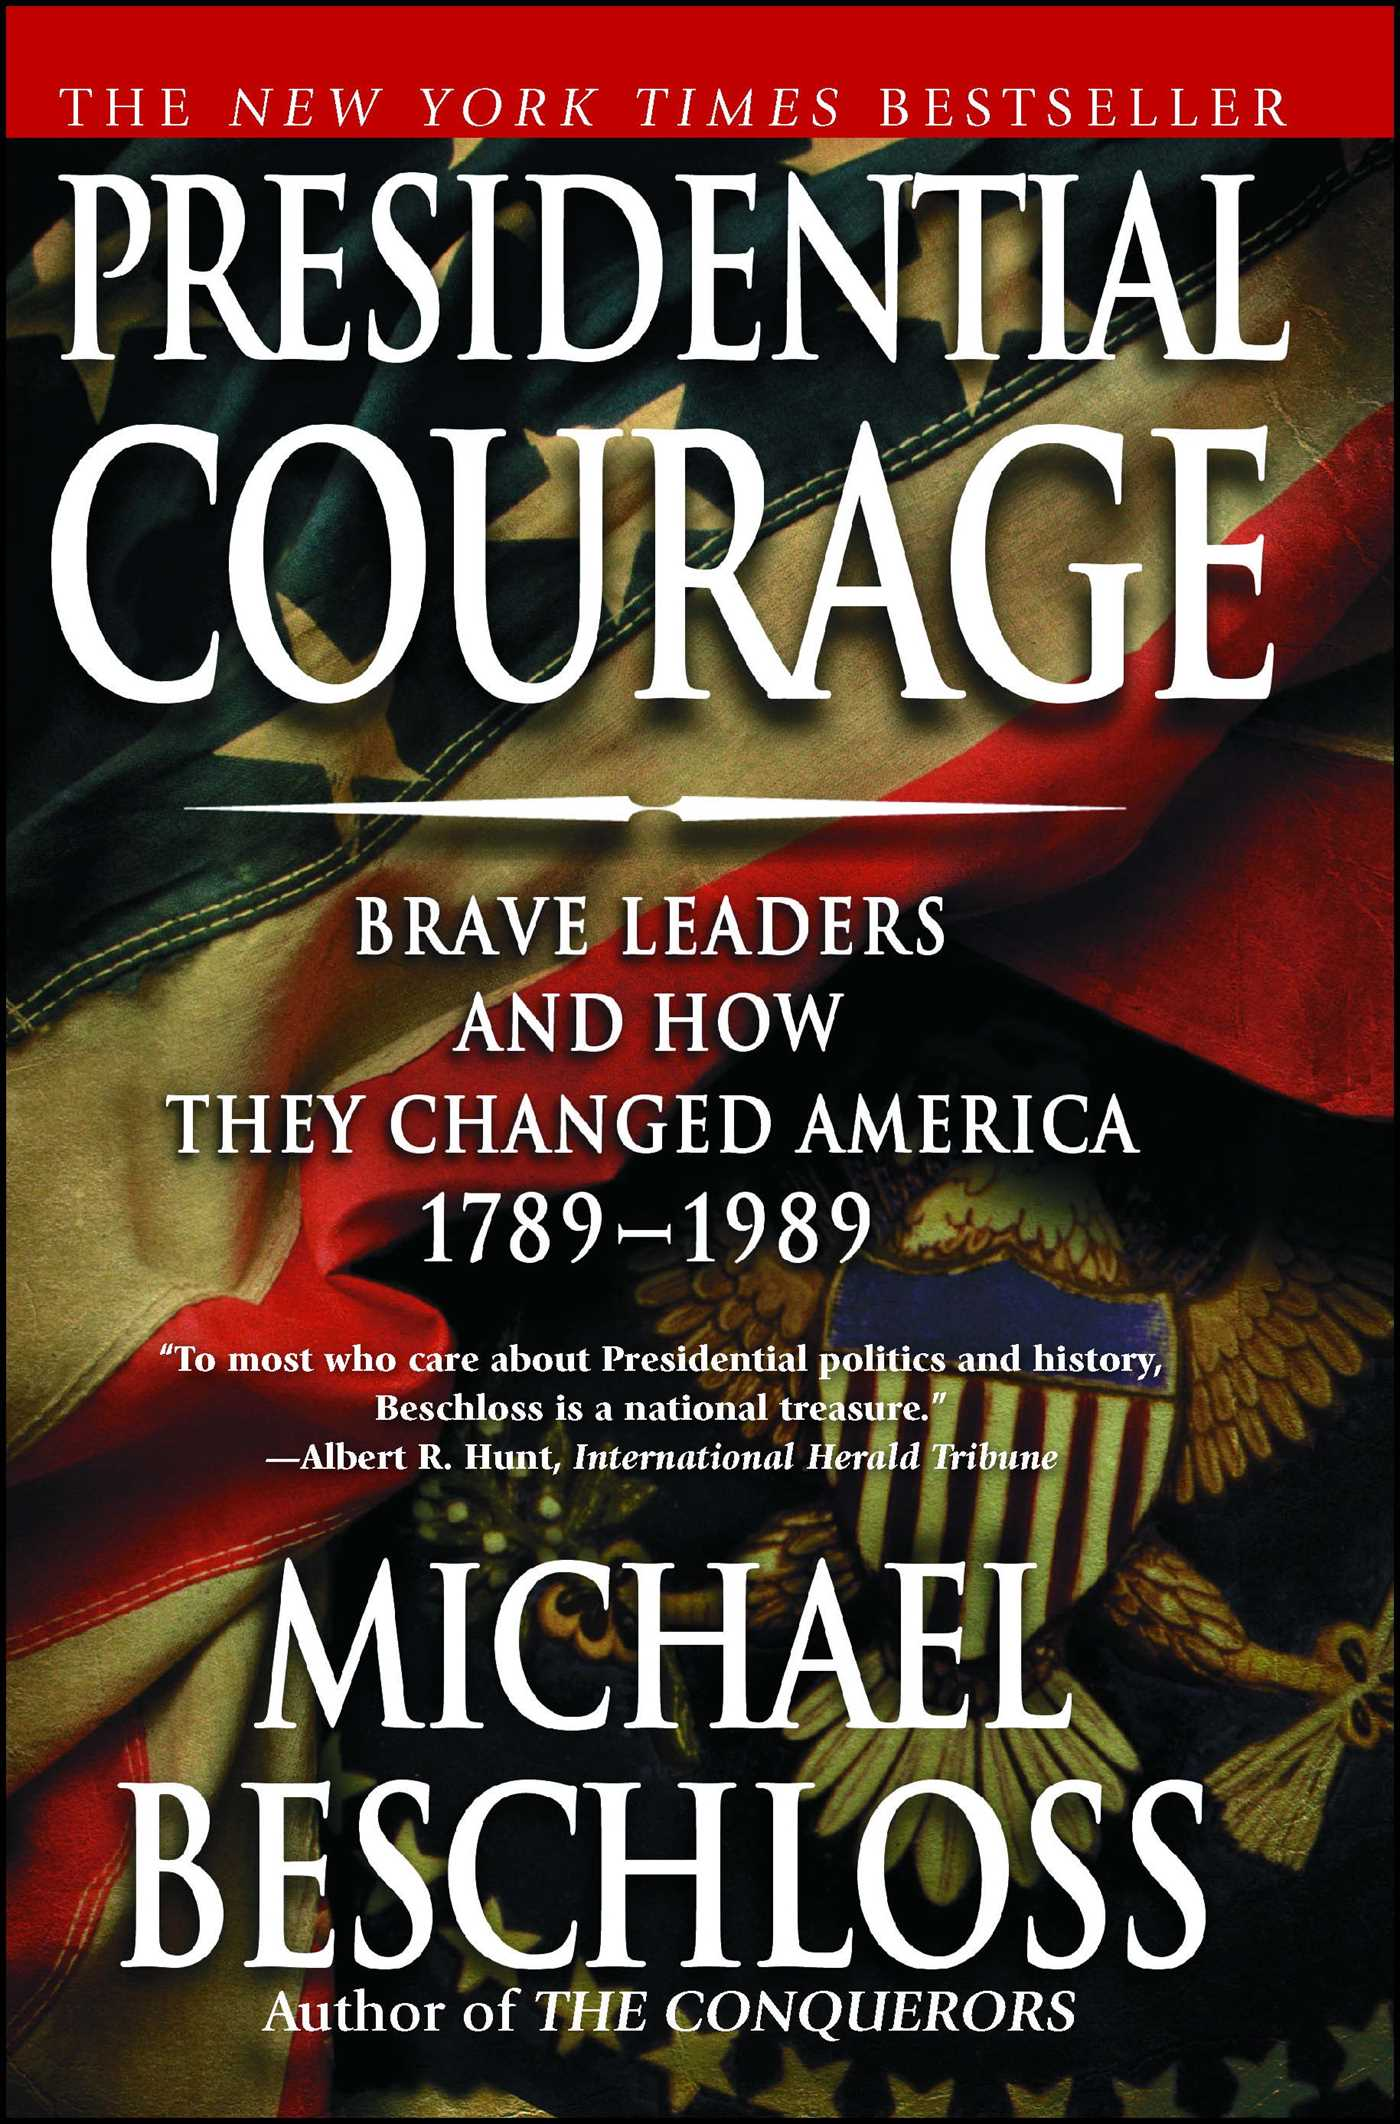 Brave Leaders & How They Changed America 1789-1989 (2007) - Michael Beschloss